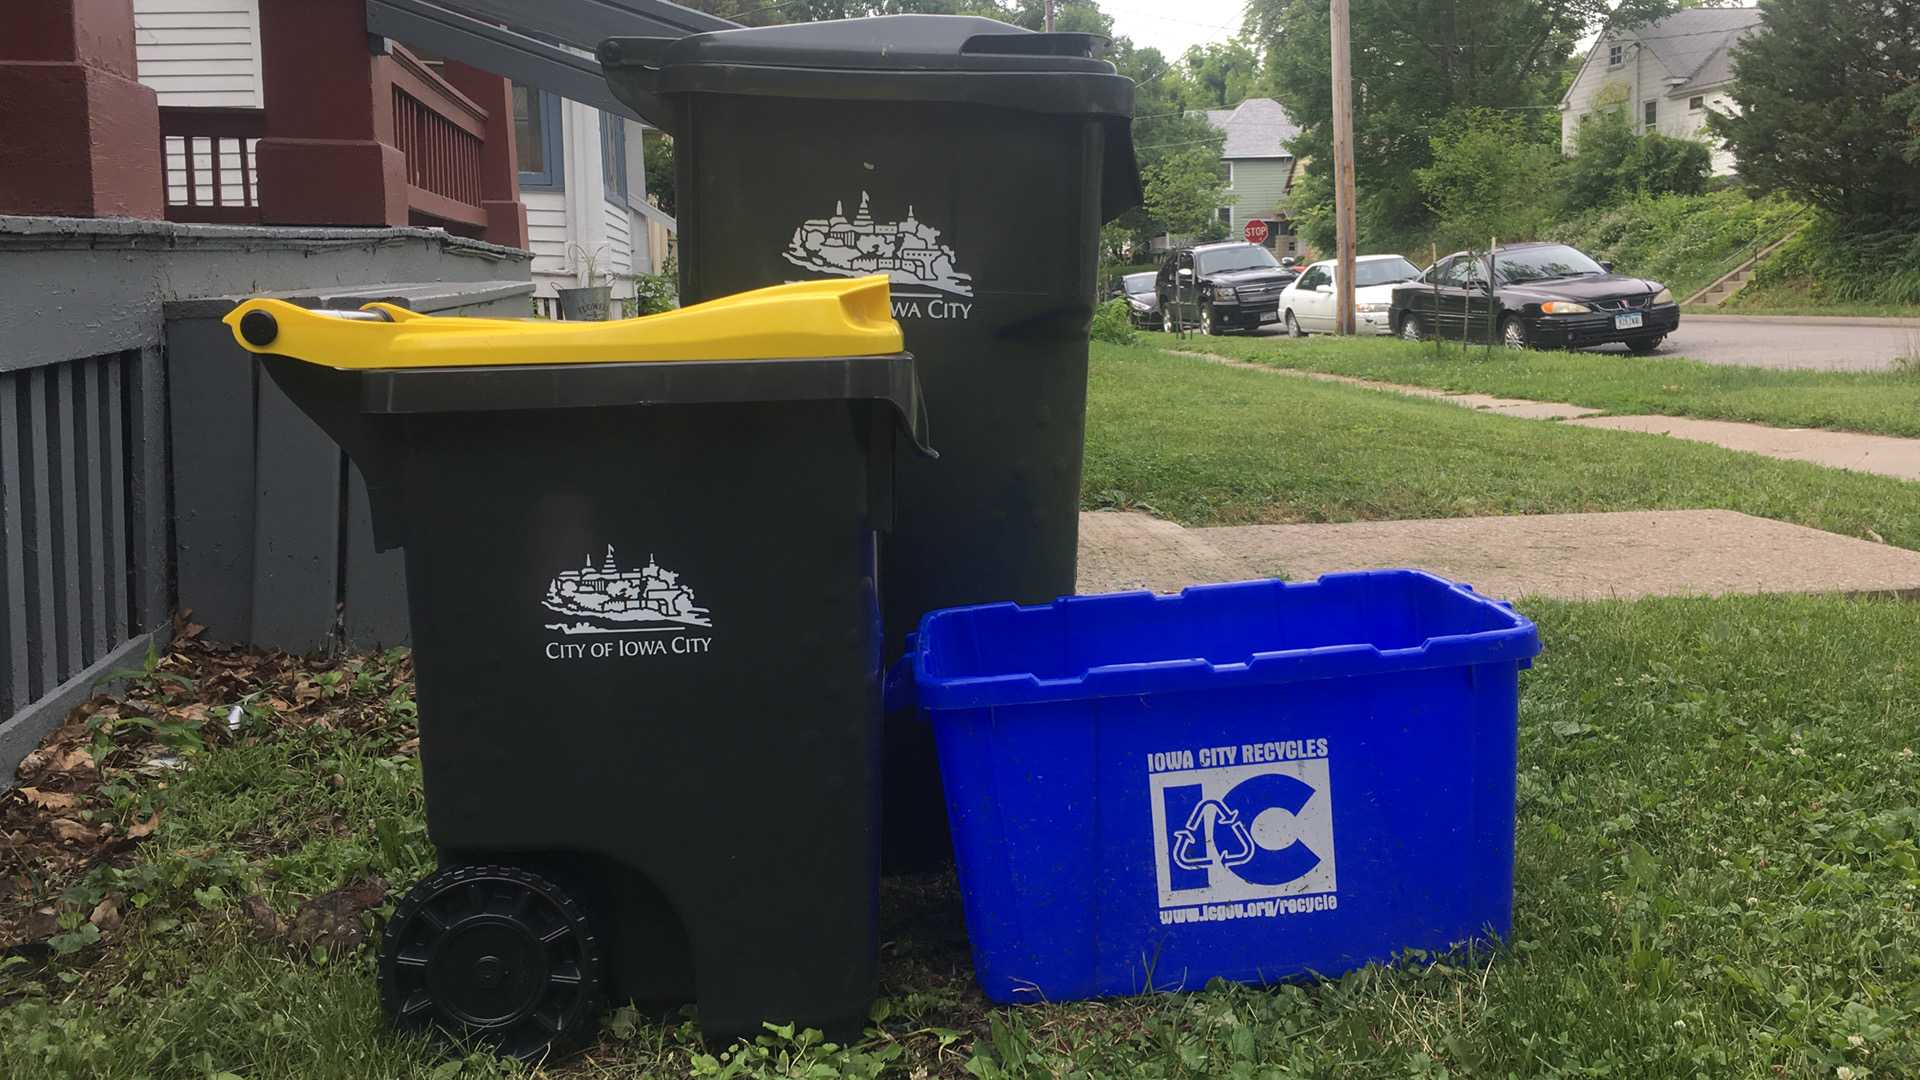 A 25-gallon composting cart stands beside a garbage can and a recycling bin. Iowa City is giving out 25- and 95-gallon composting carts to curbside customers. (Photo Illustration by Katelyn Weisbrod)